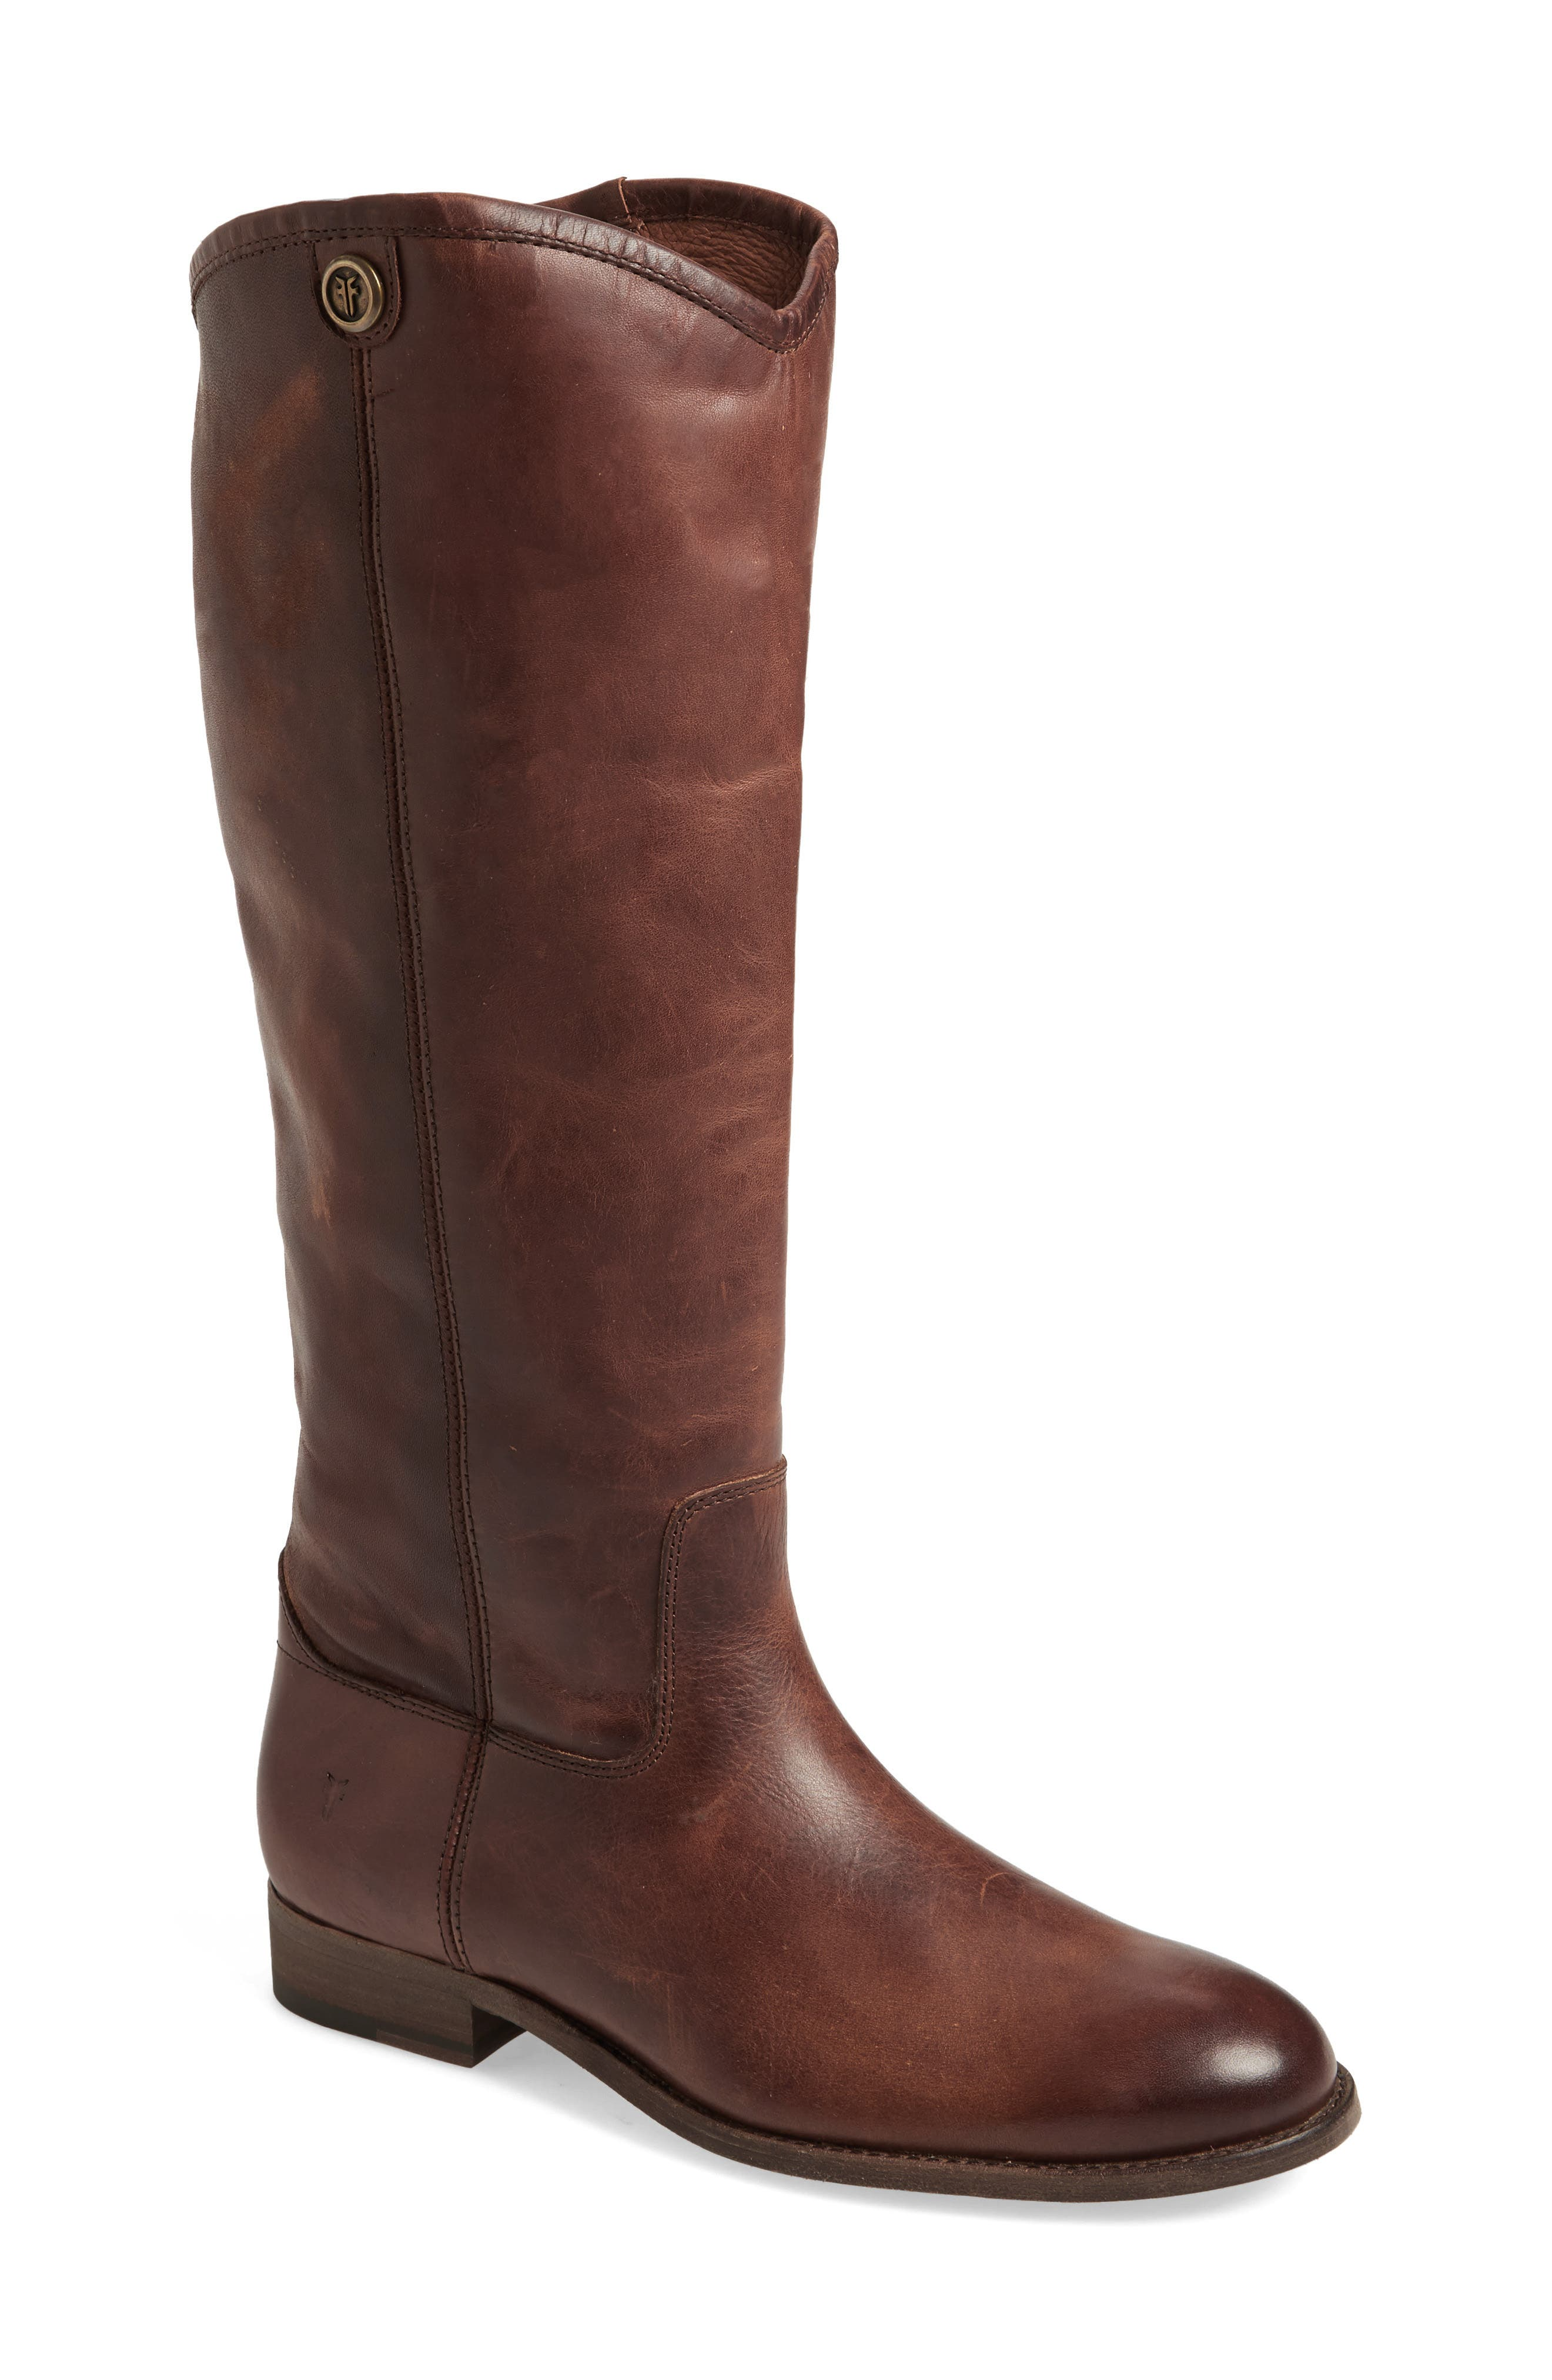 Alternate Image 1 Selected - Frye Melissa Button 2 Knee High Boot (Women)